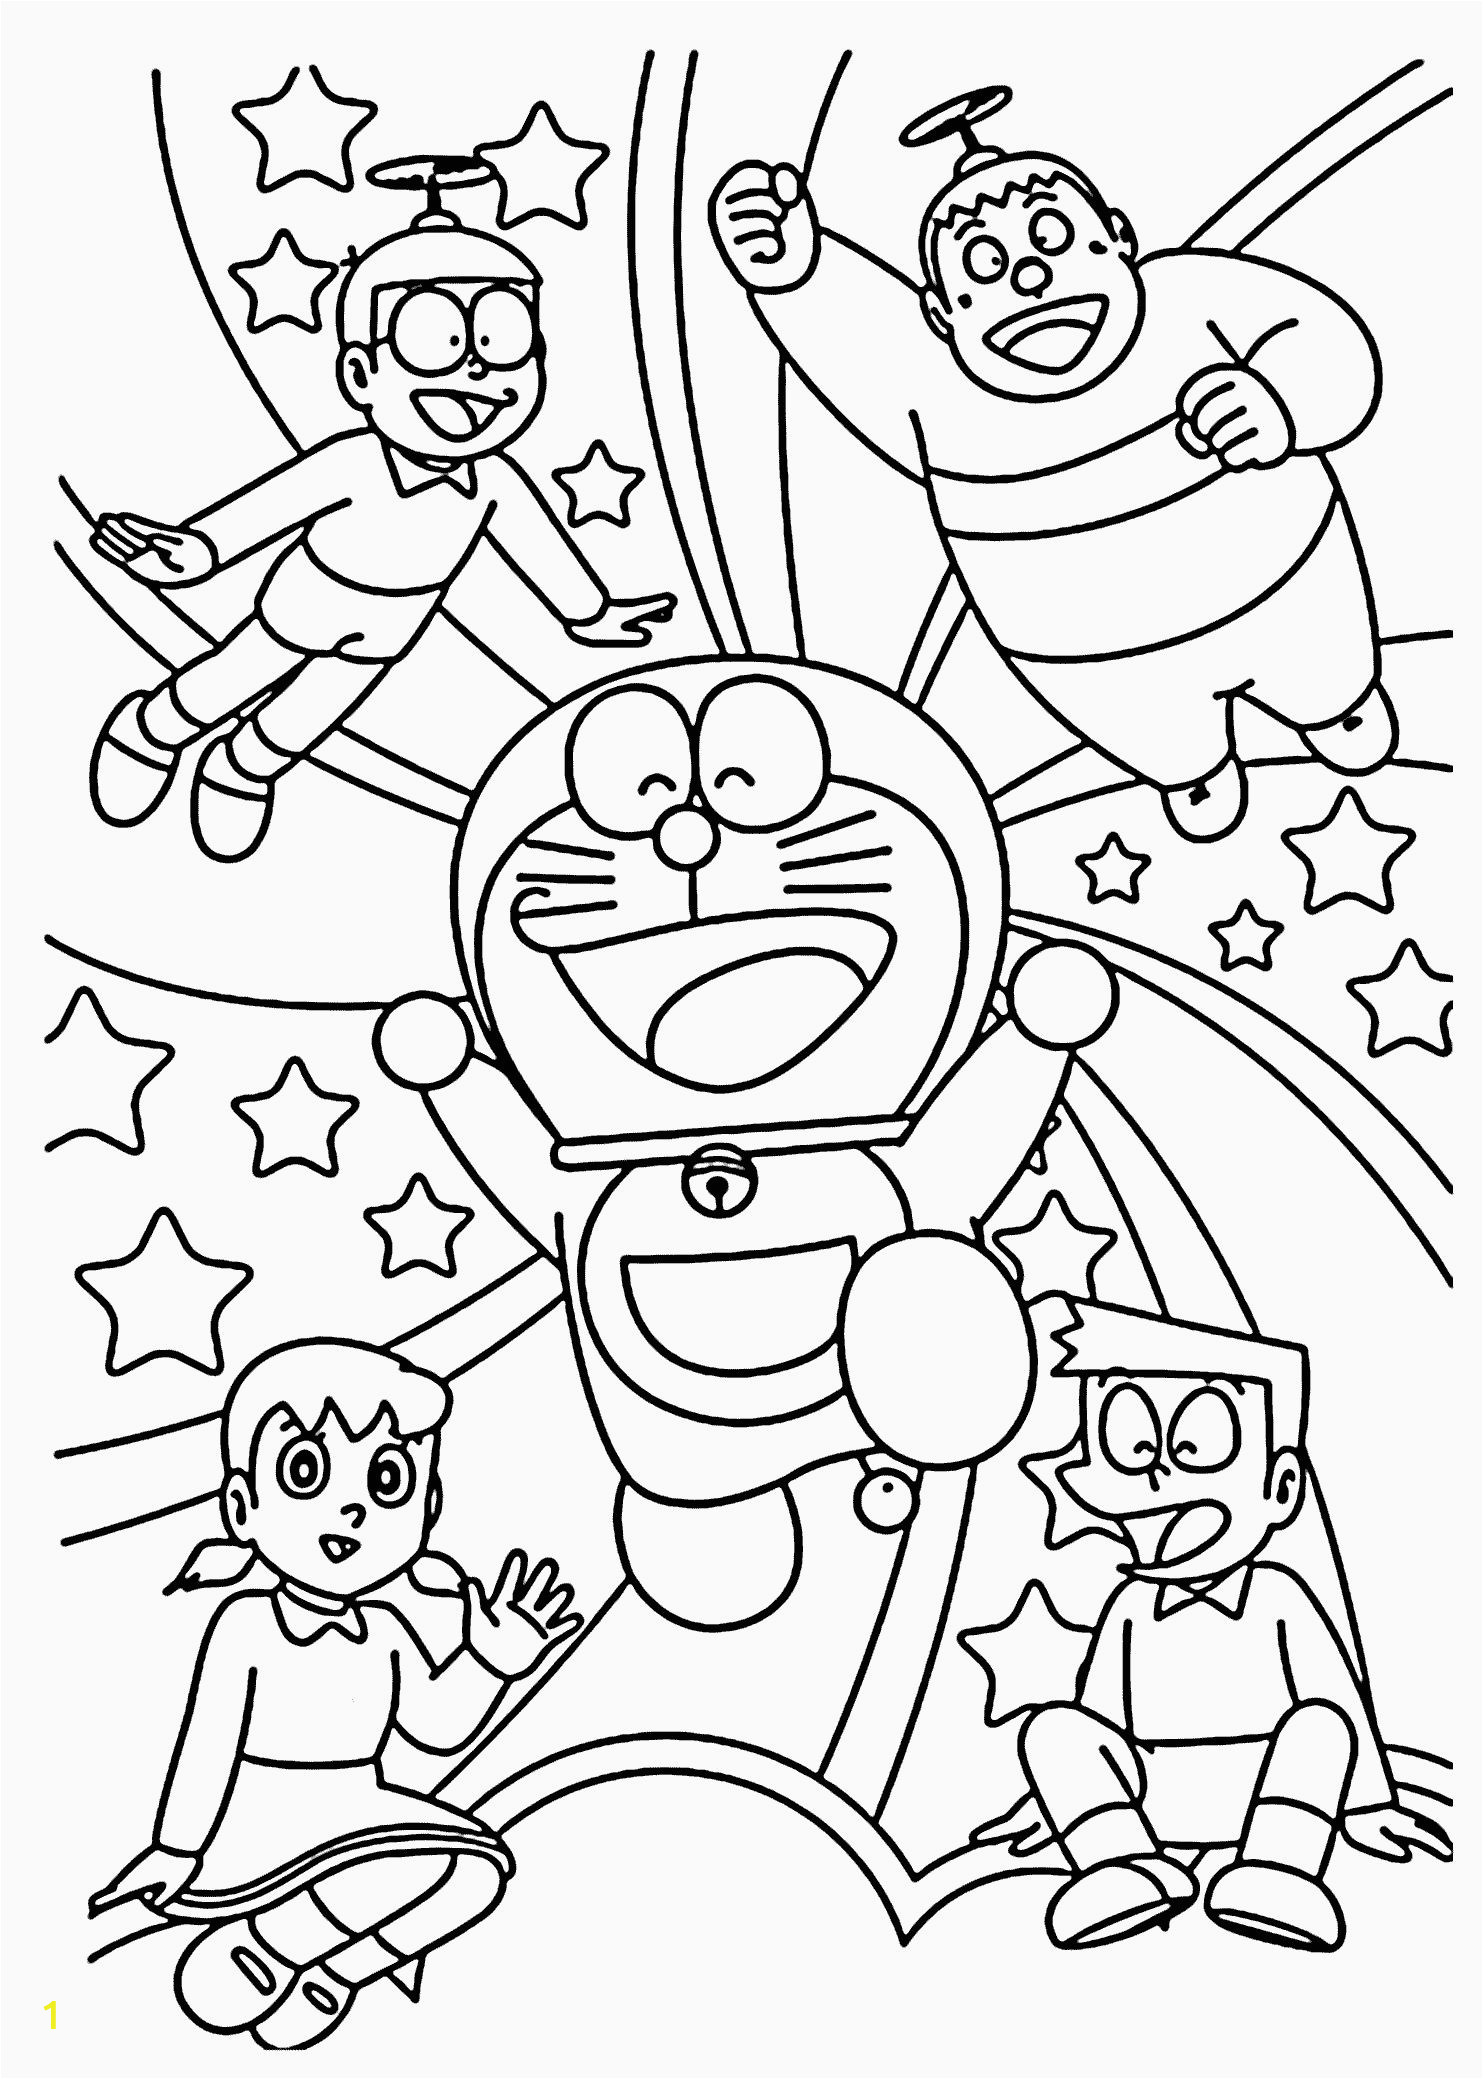 Coloring Kitty and Painting Doraemon for toddlers Cartoon Coloring Book Pdf In 2020